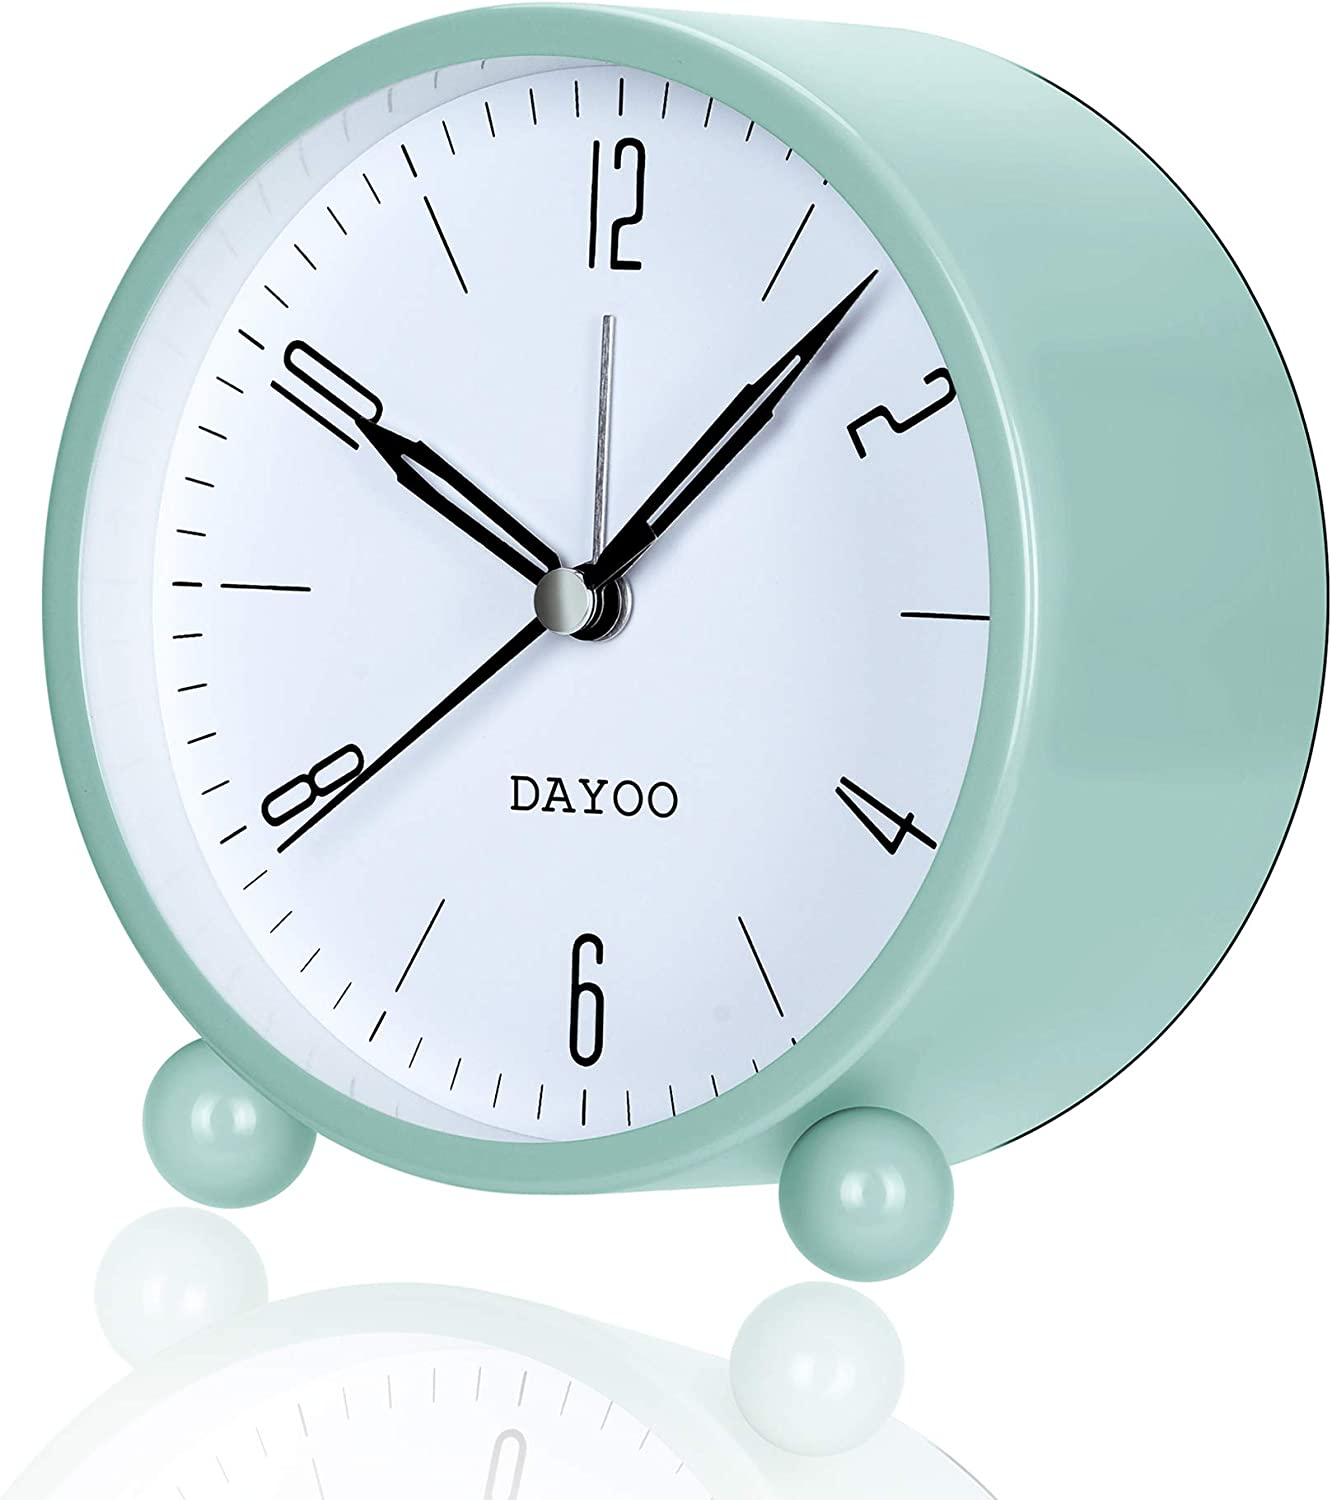 DAYOO Alarm Clock, Analog Alarm Clock Non Ticking with Snooze for Heavy Sleepers, Battery Operated and Light Function, Super Silent Alarm Clock with Simple Design for Desk/Bedroom (2020 Version)